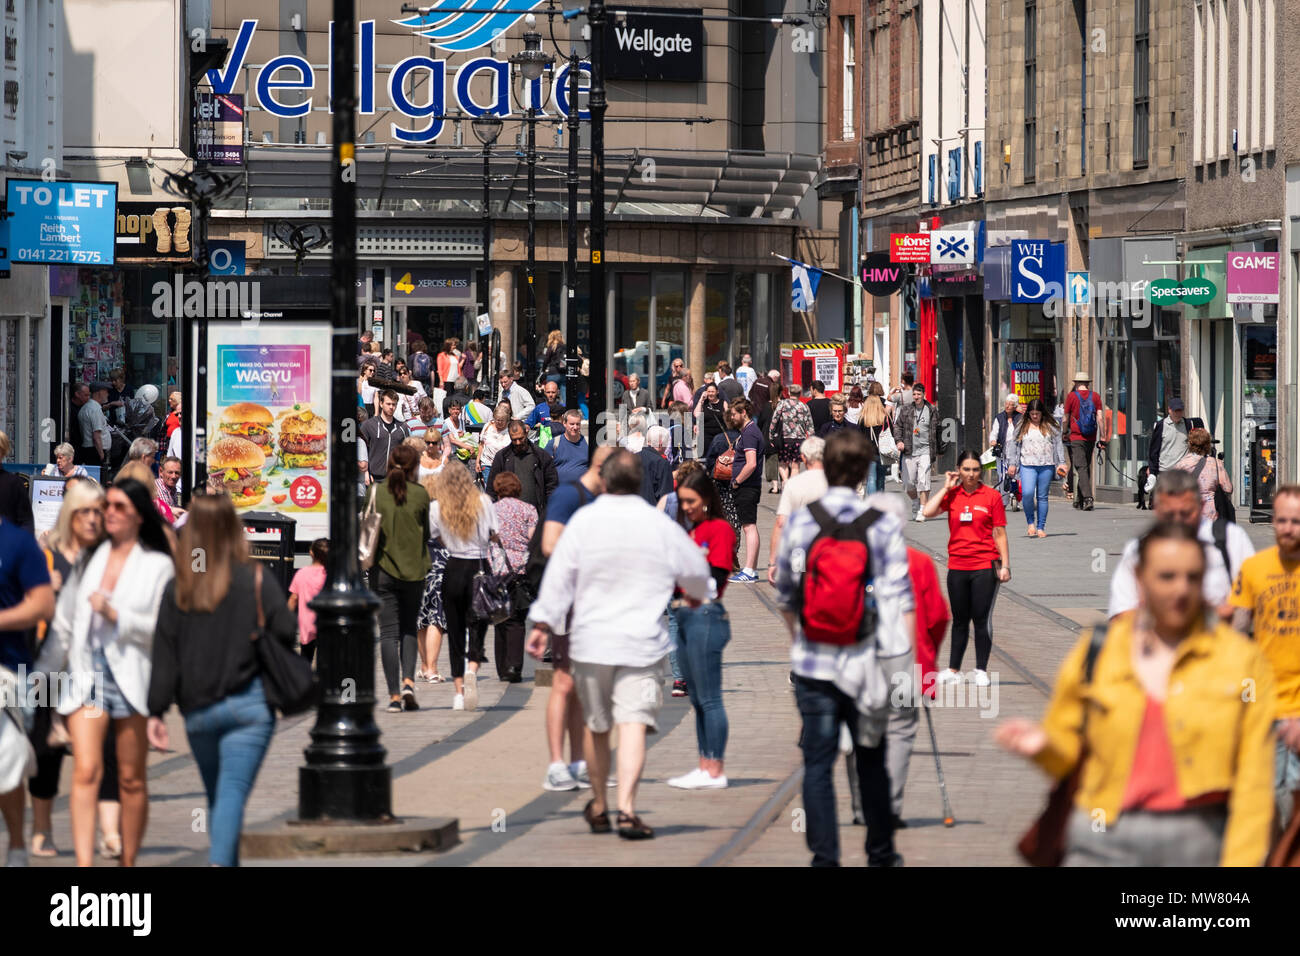 Busy Murraygate street pedestrianised shopping street in central Dundee, Tayside,Scotland, Uk - Stock Image